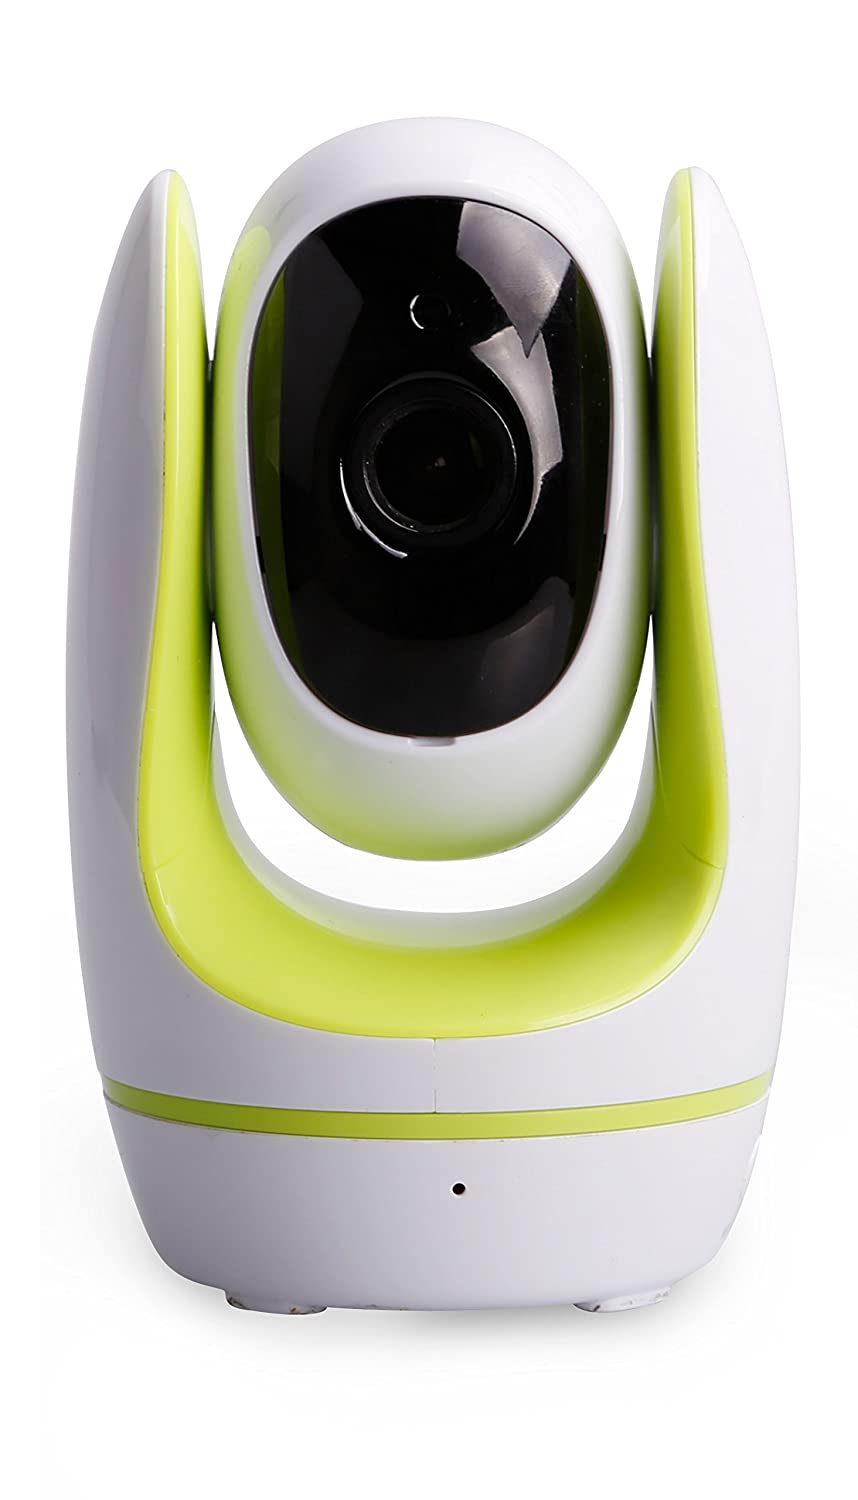 Fosbaby 720P 1.0MP Video Monitor (Green)